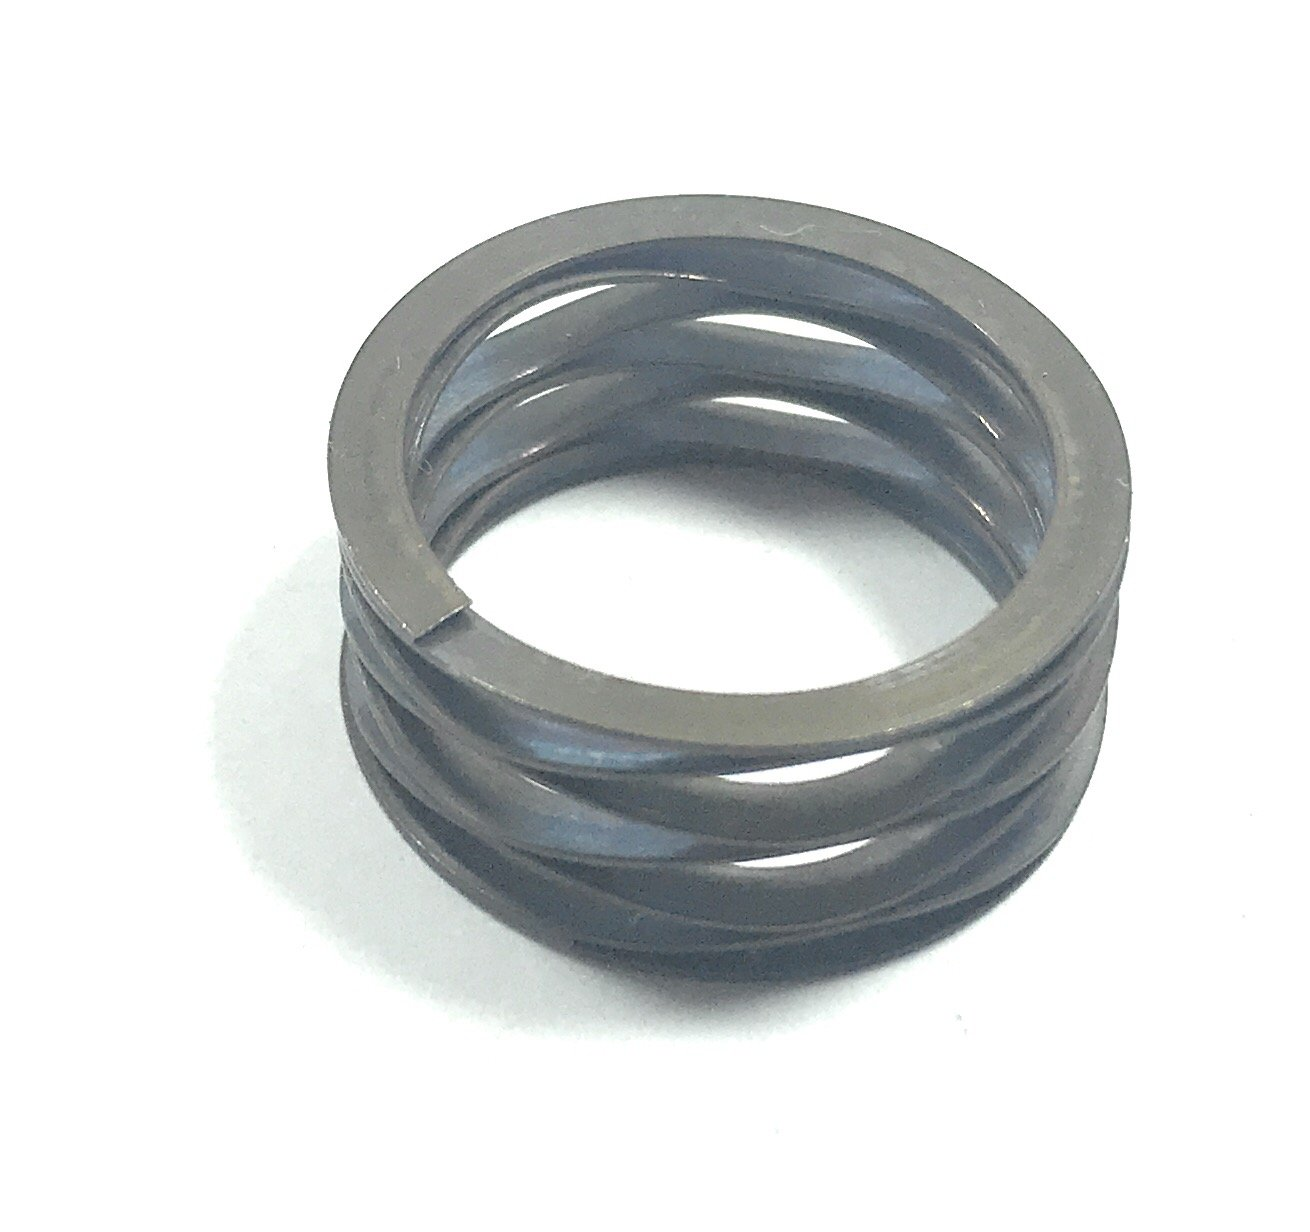 Multiwave Washers with Shim Ends,inch, 0.73'' ID, 1'' OD, 0.015'' Thick, 0.094'' Material Radial Wall,132lbs/in Spring Rate, 25lbs Load Capacity@Spring height0.227'',Free height0.417'' (Pack of 5)